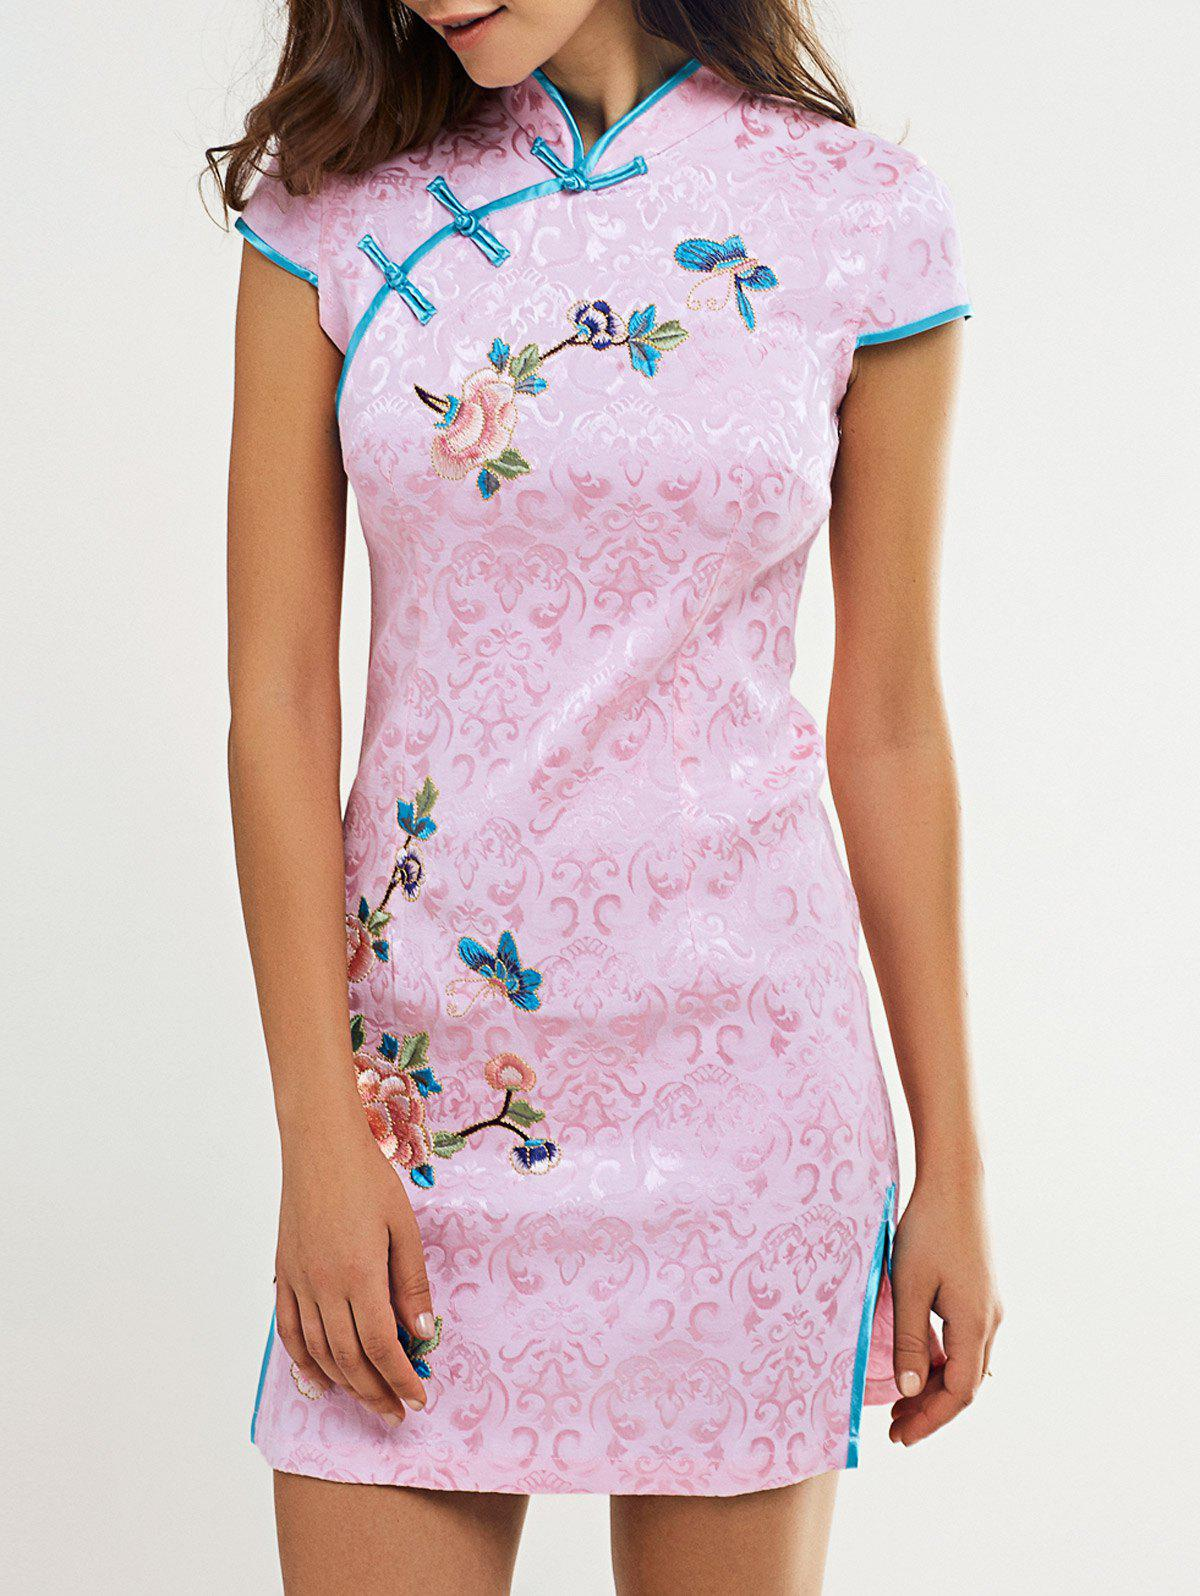 Plate Button Butterfly and Floral Pattern Cheongsam - PINK XL